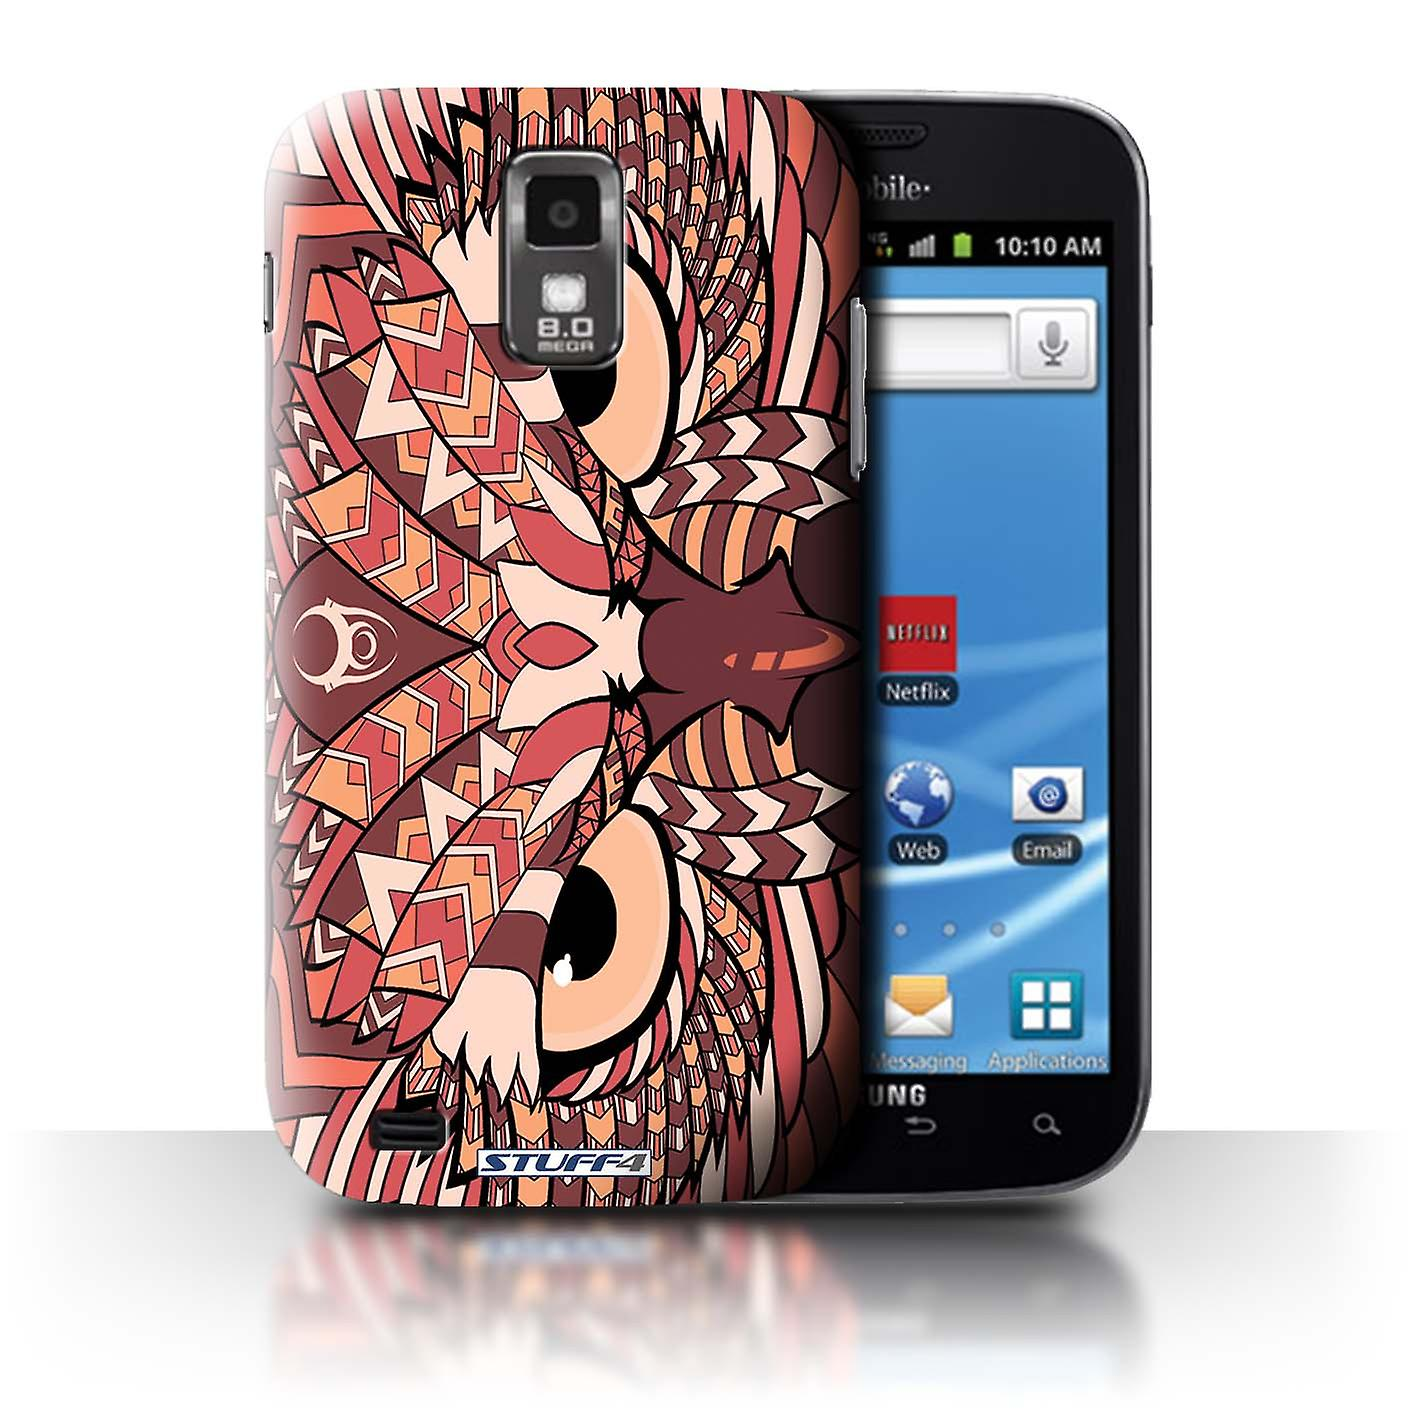 STUFF4 Case/Cover for Samsung Galaxy S2 Hercules/T989/Owl ...